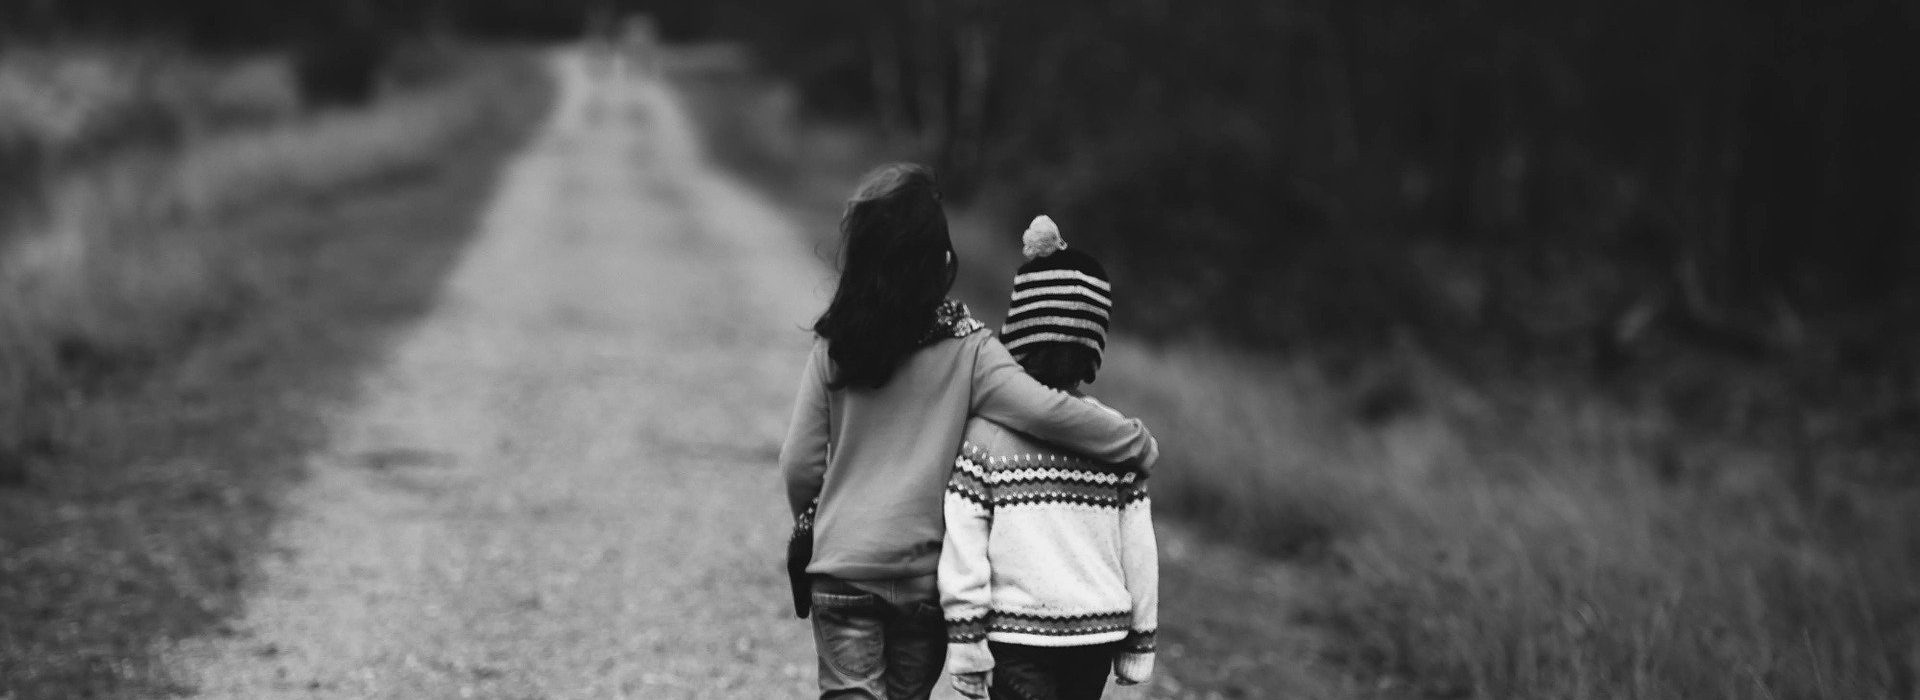 Why Childhood Cuddles Are So Important